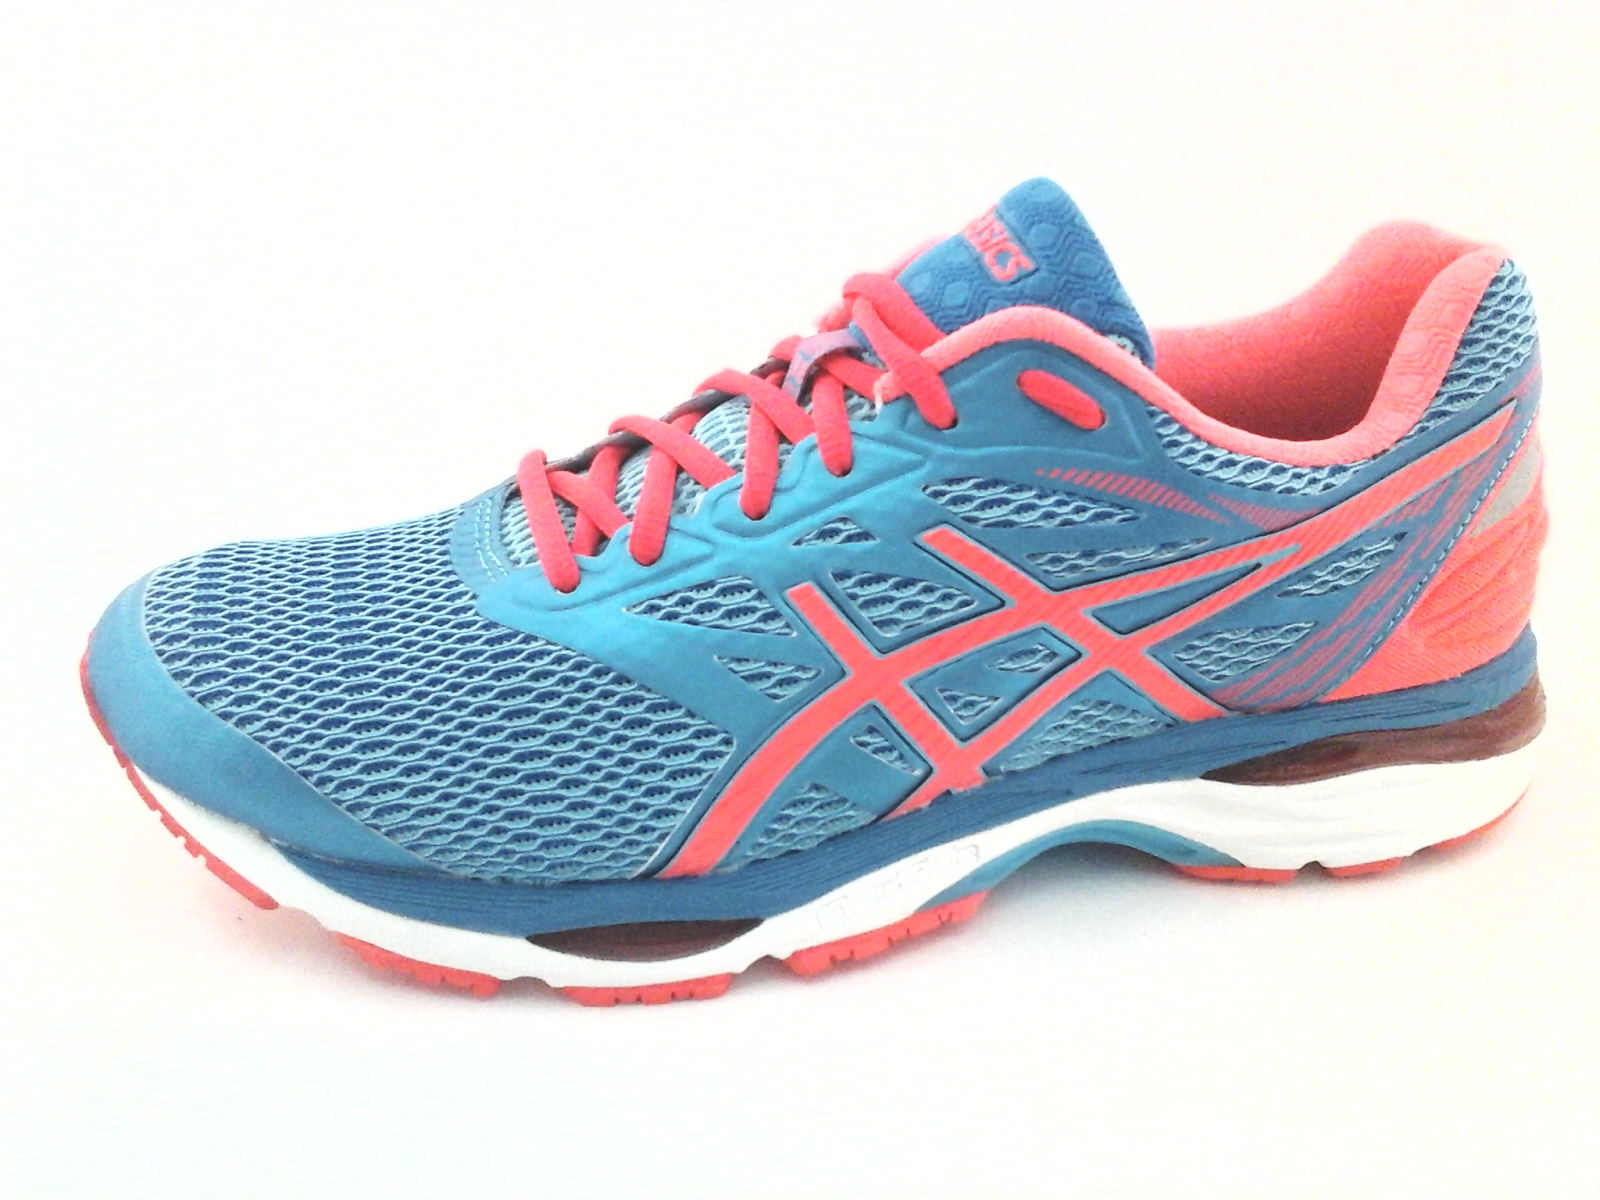 Nwob Asics Gel Cumulus 18 T6C8N Bluecoral Womens Sneakers Shoes